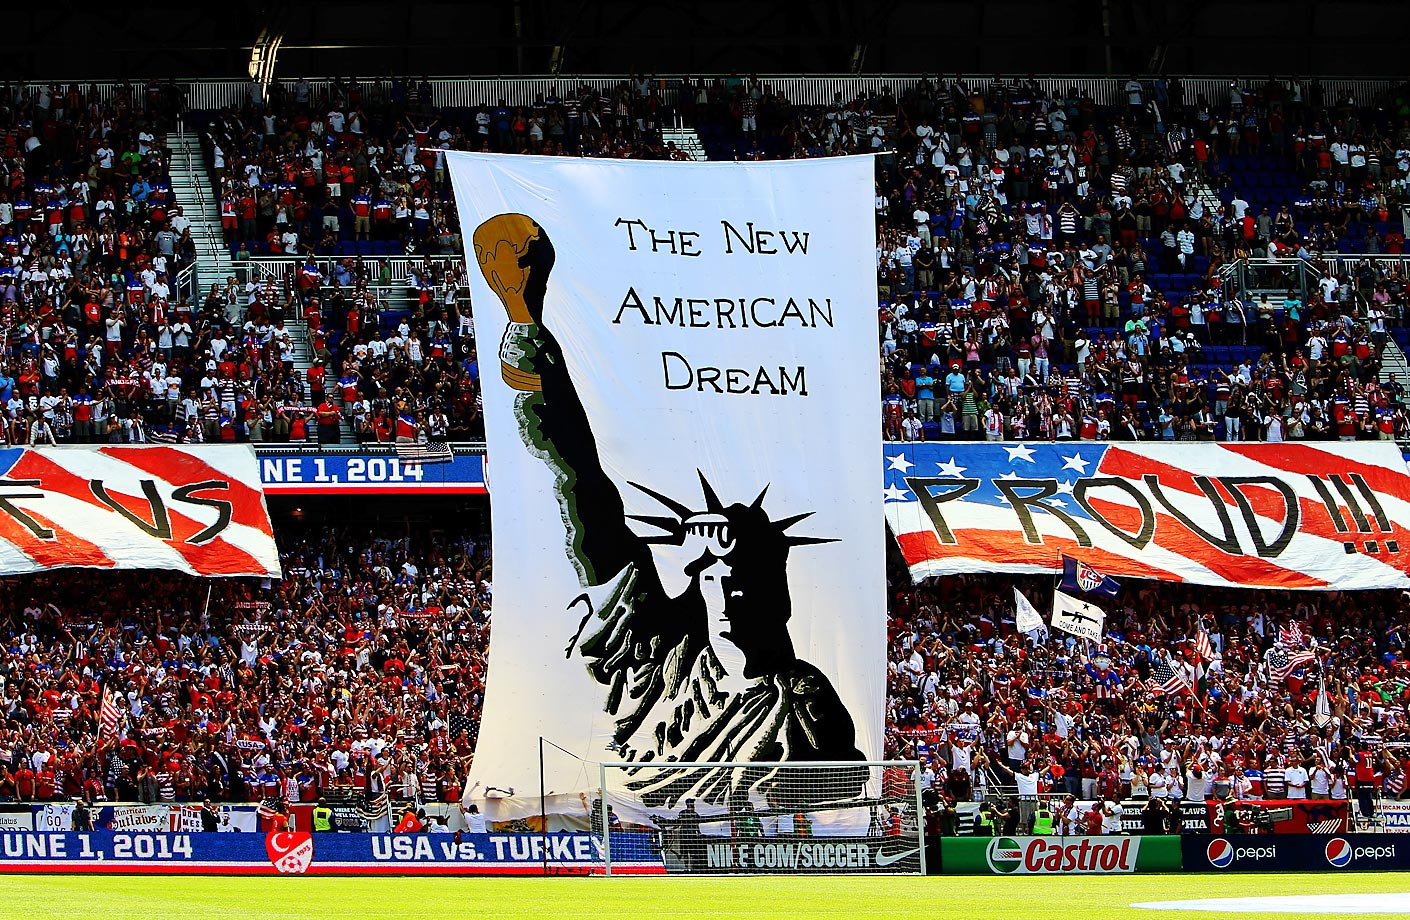 The American Outlaws unveil a huge tifo ahead of a 2014 World Cup send-off match between the USA and Turkey at Red Bull Arena in Harrison, N.J.